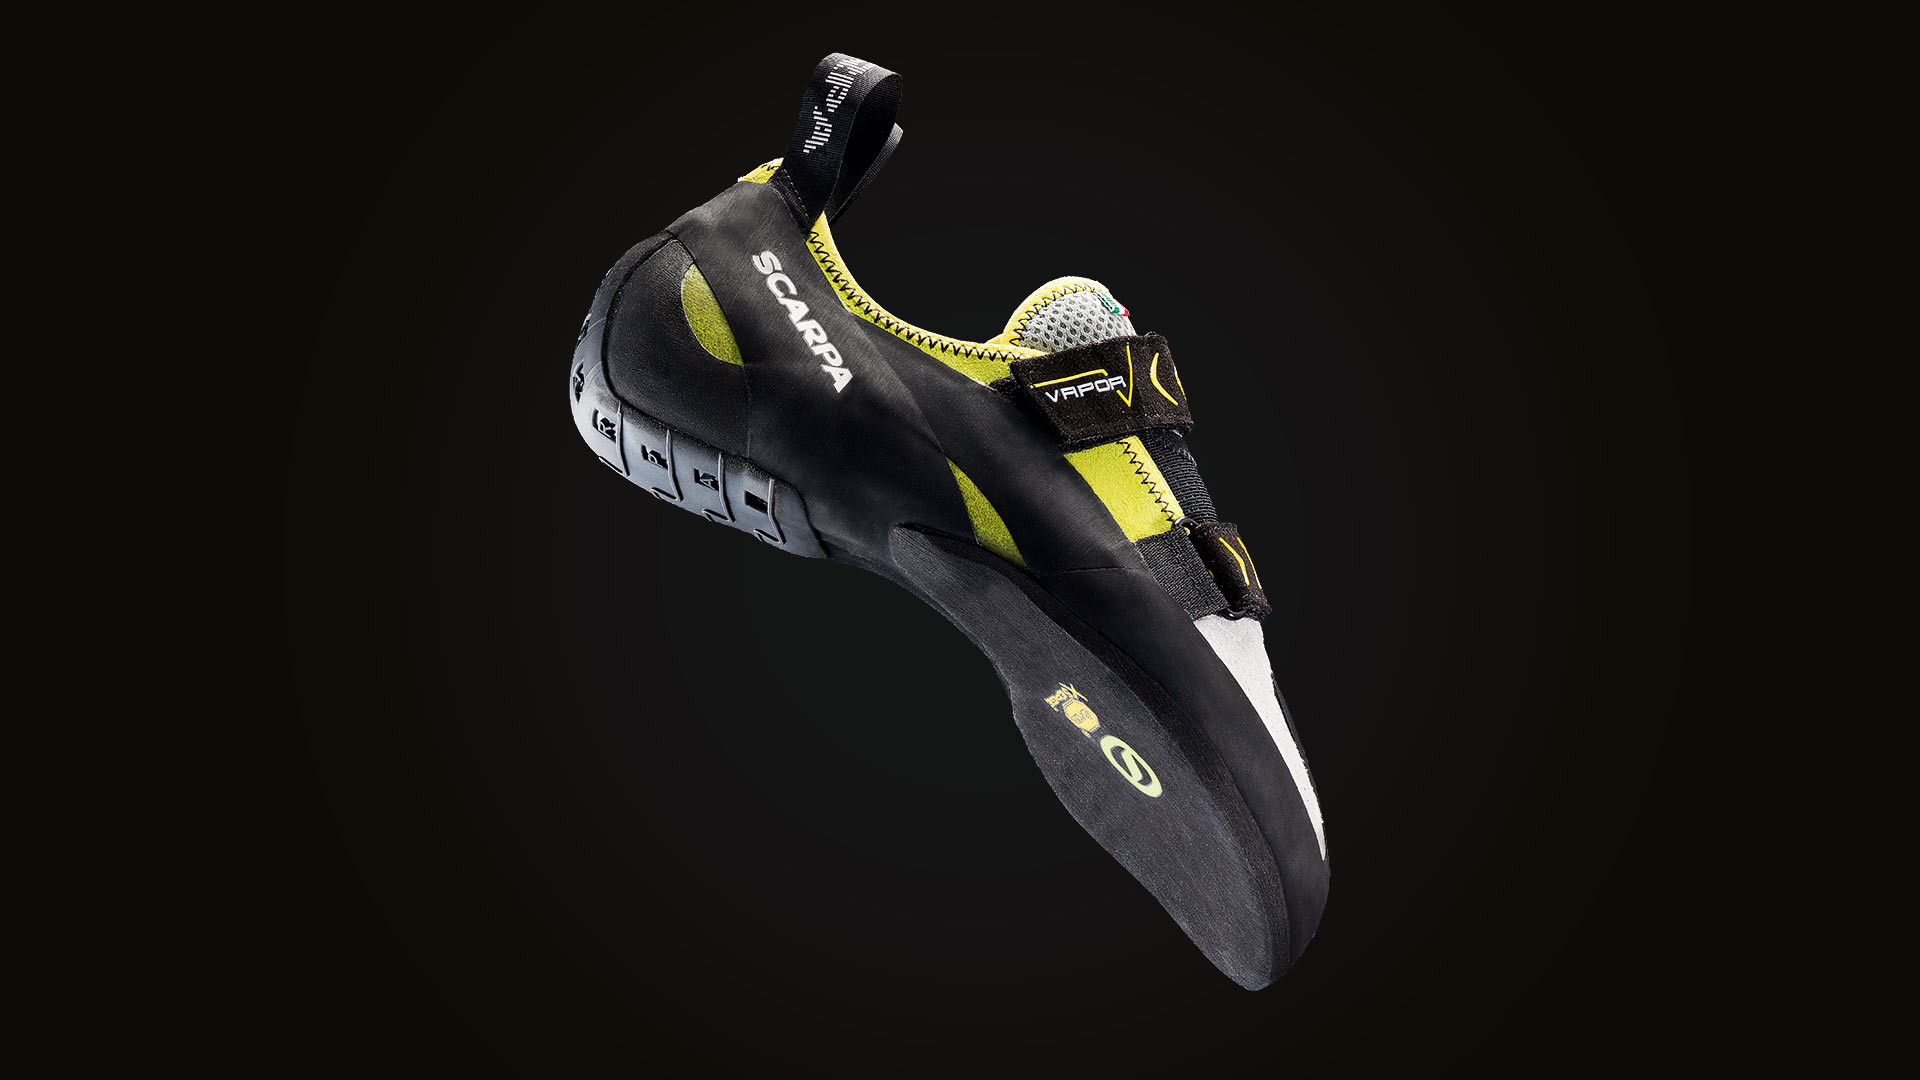 The Scarpa Vapour V climbing shoe, perfect for indoor bouldering and comfortable outdoor climbs